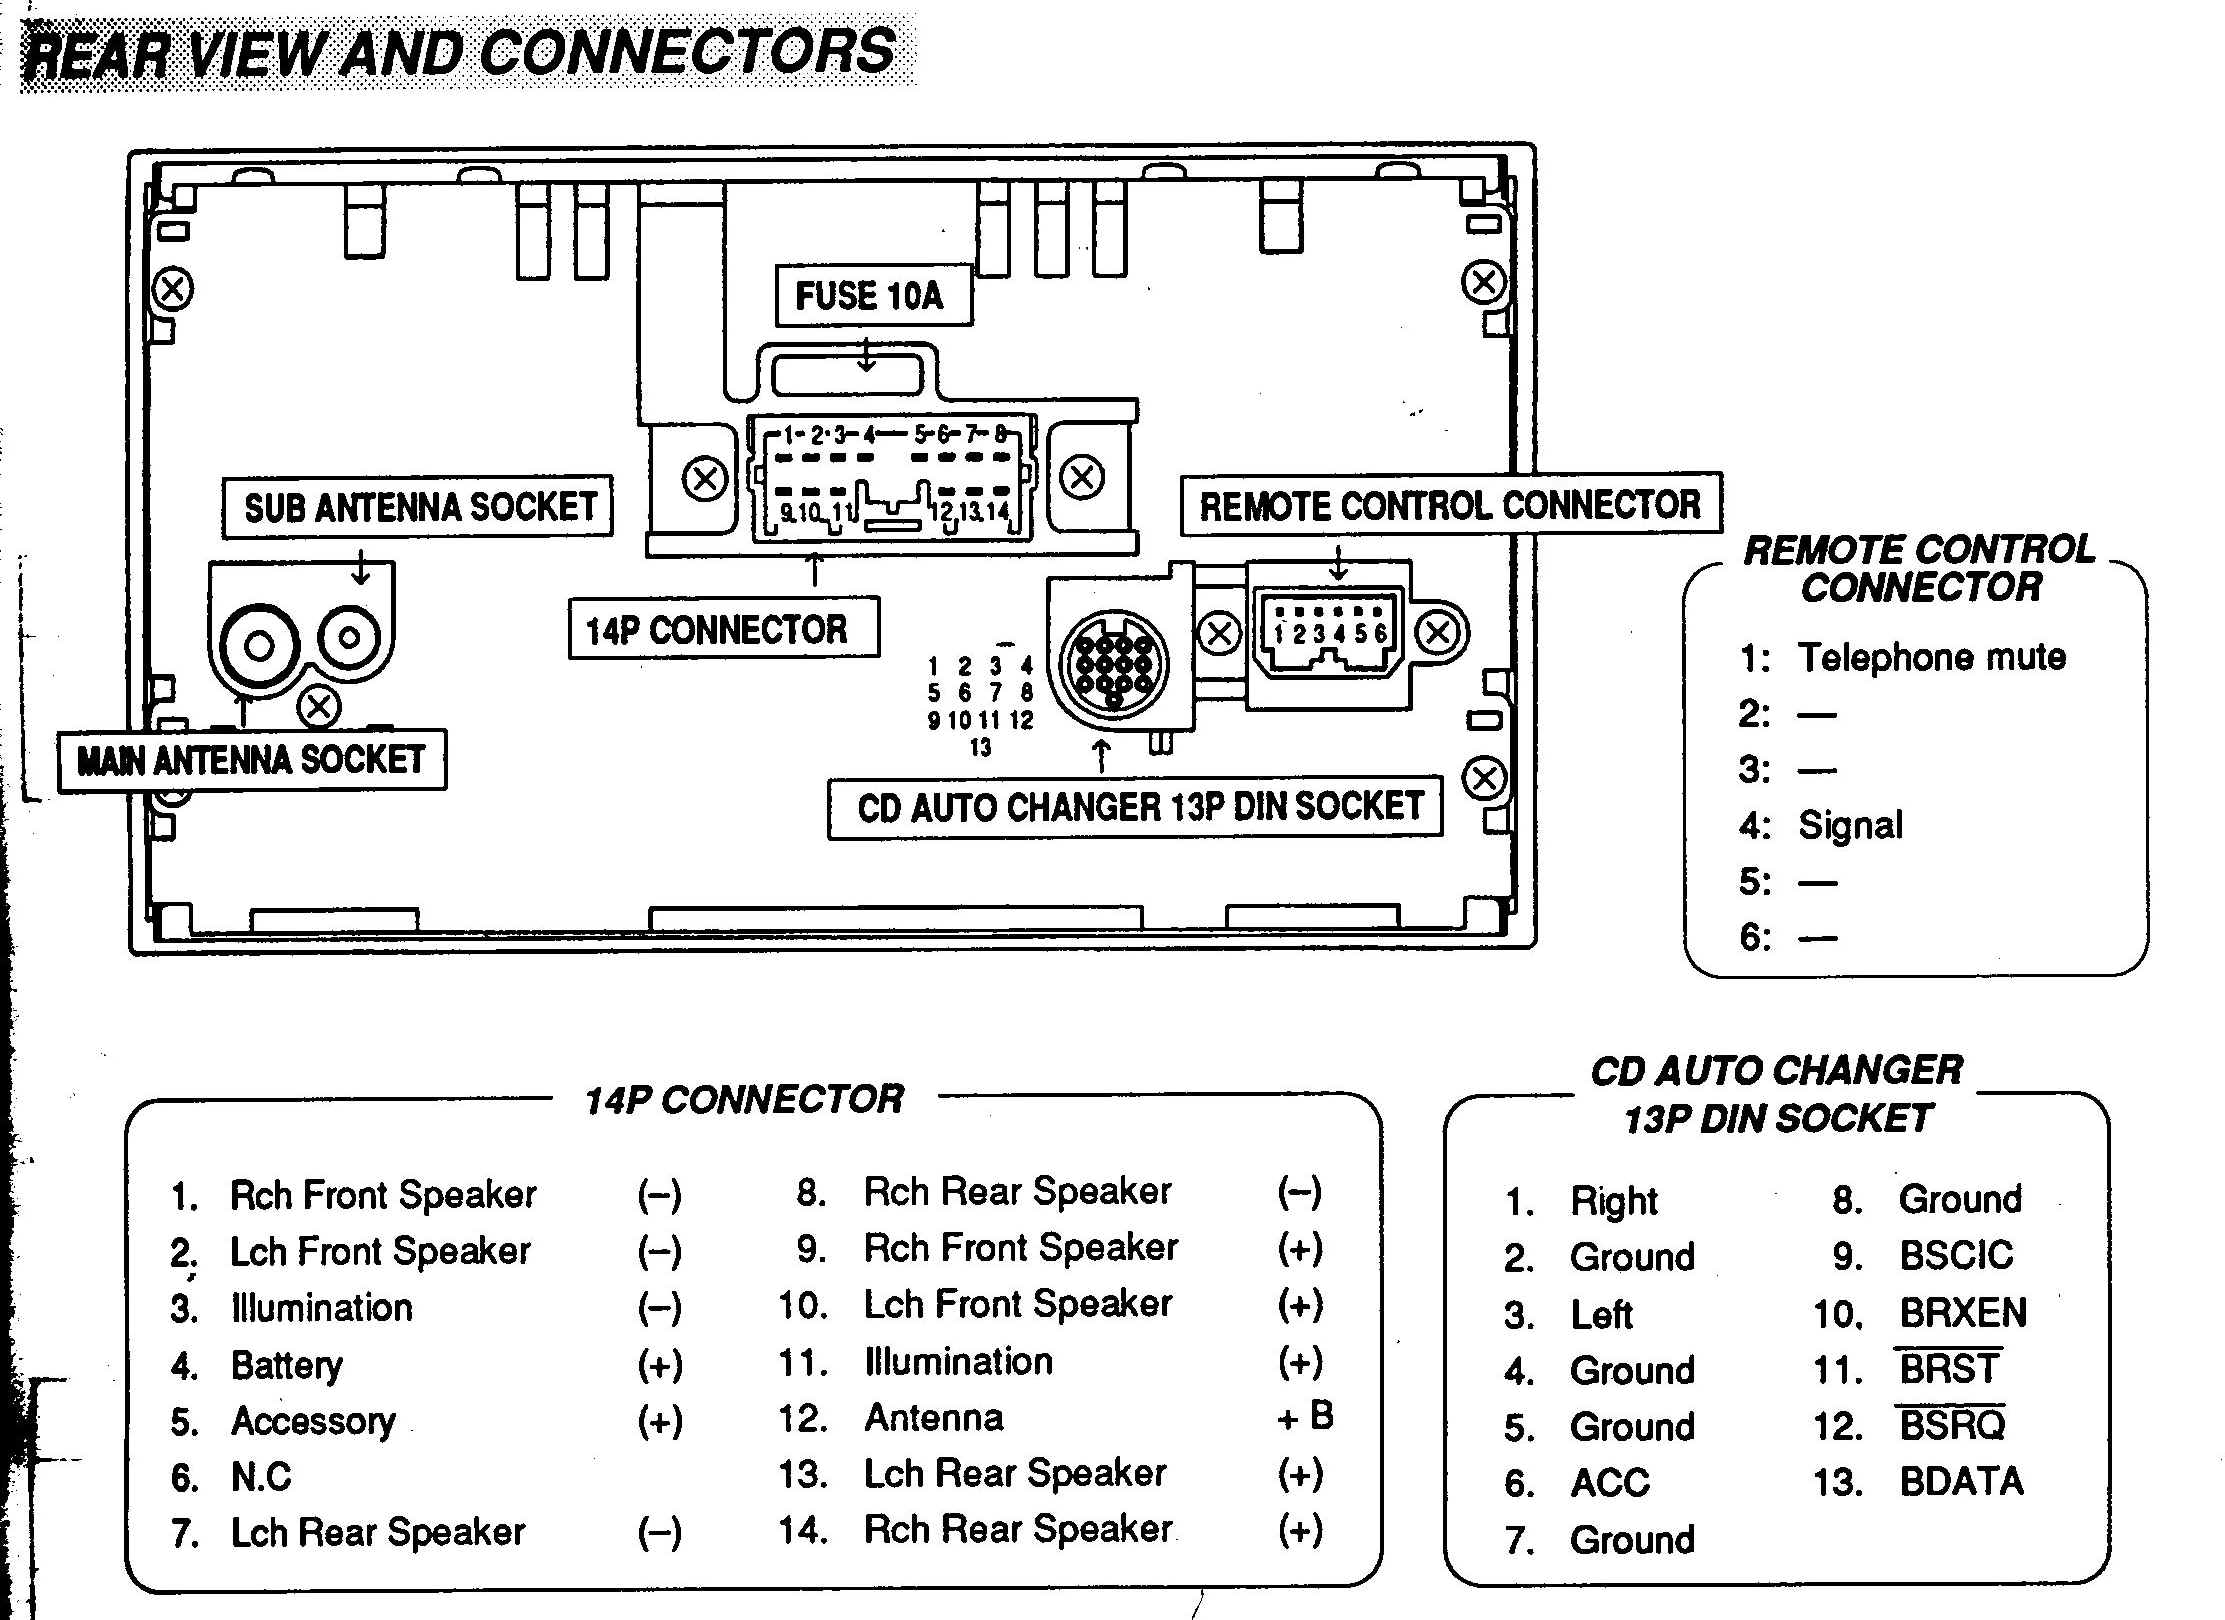 WireHarnessMit121003 car radio wire diagram car wiring diagrams instruction eg civic radio wiring diagram at gsmportal.co